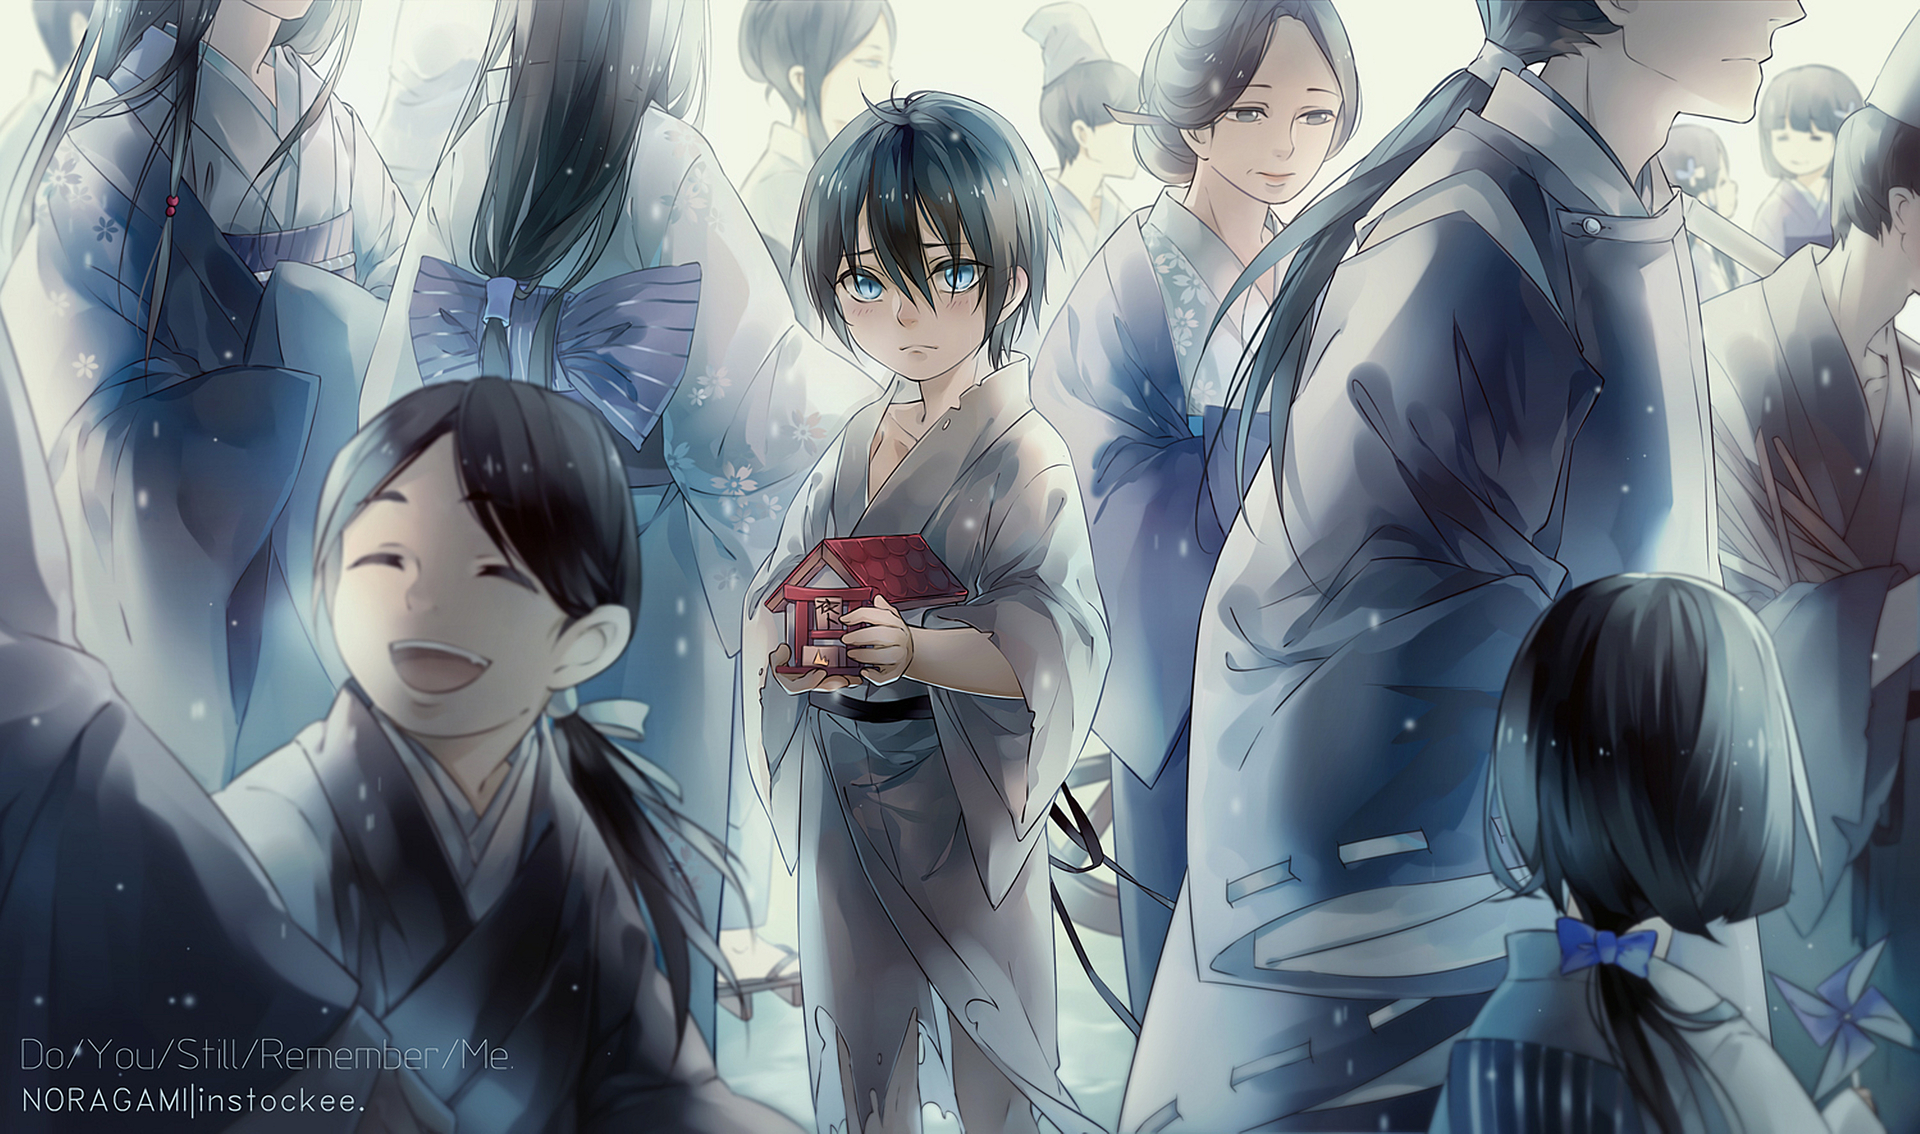 imagen noragami wallpaper by - photo #19